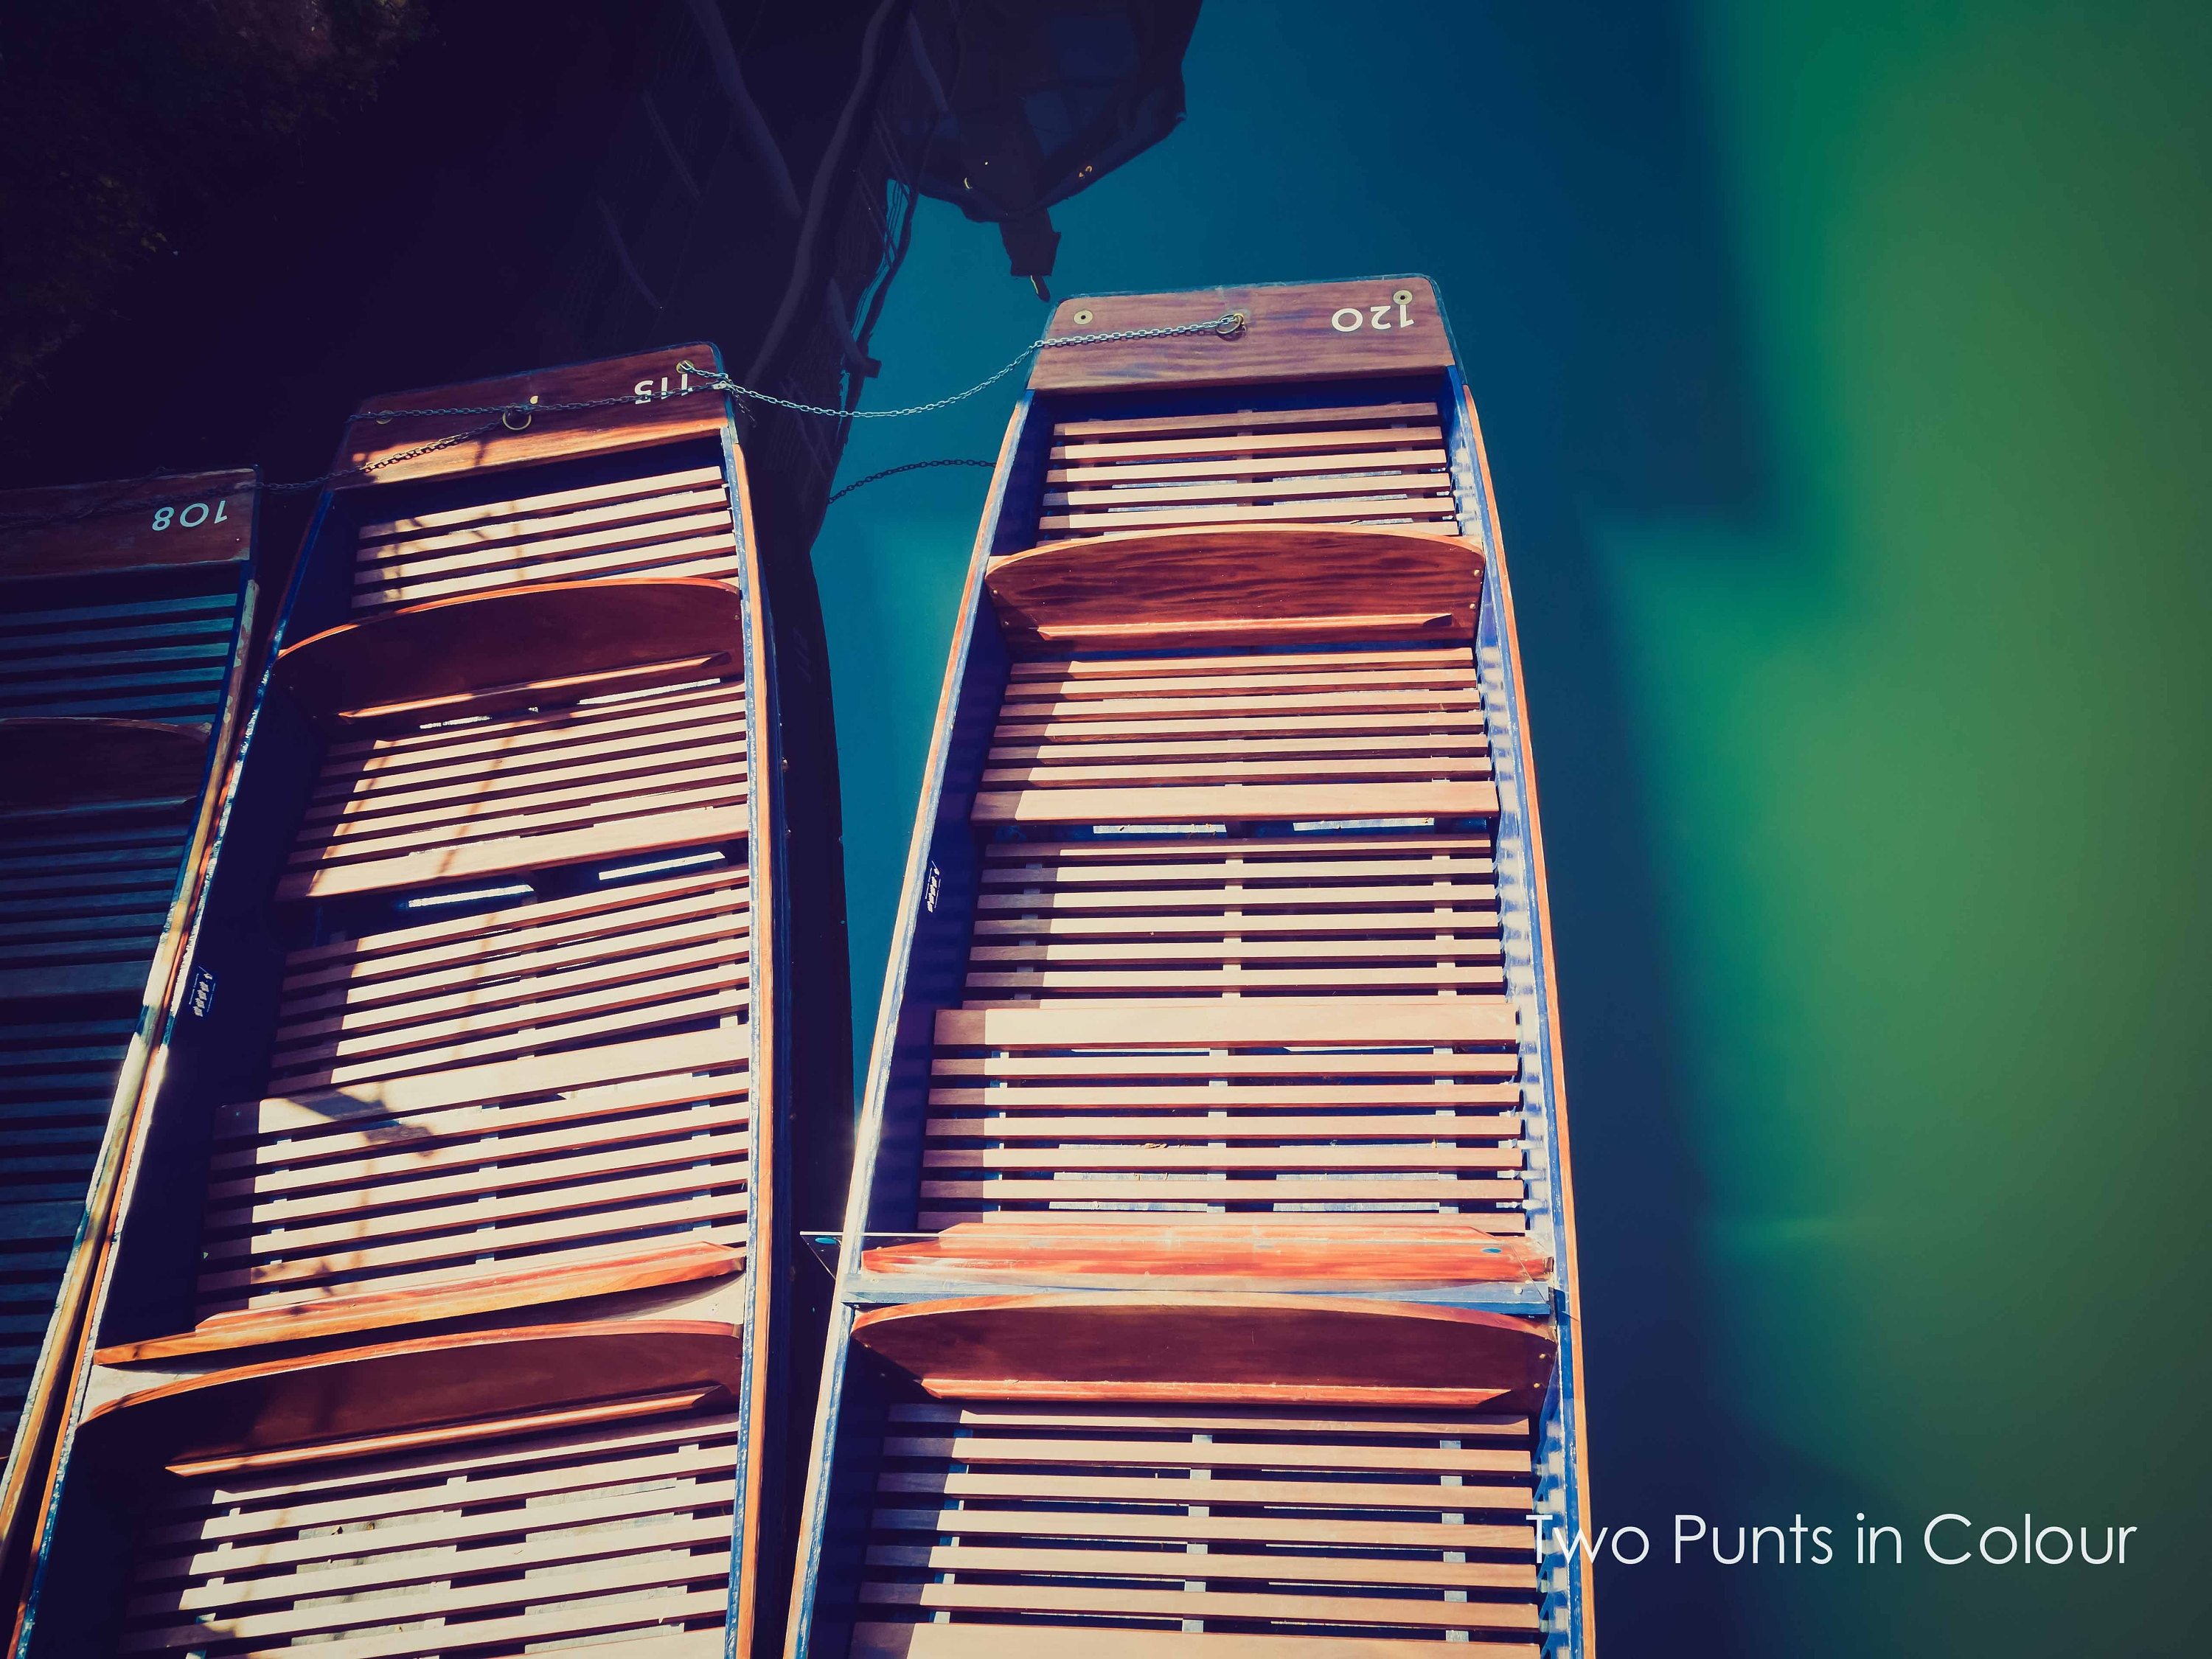 colour fine art print and wall art of two empty punts lined up on the River Cam in Cambridge